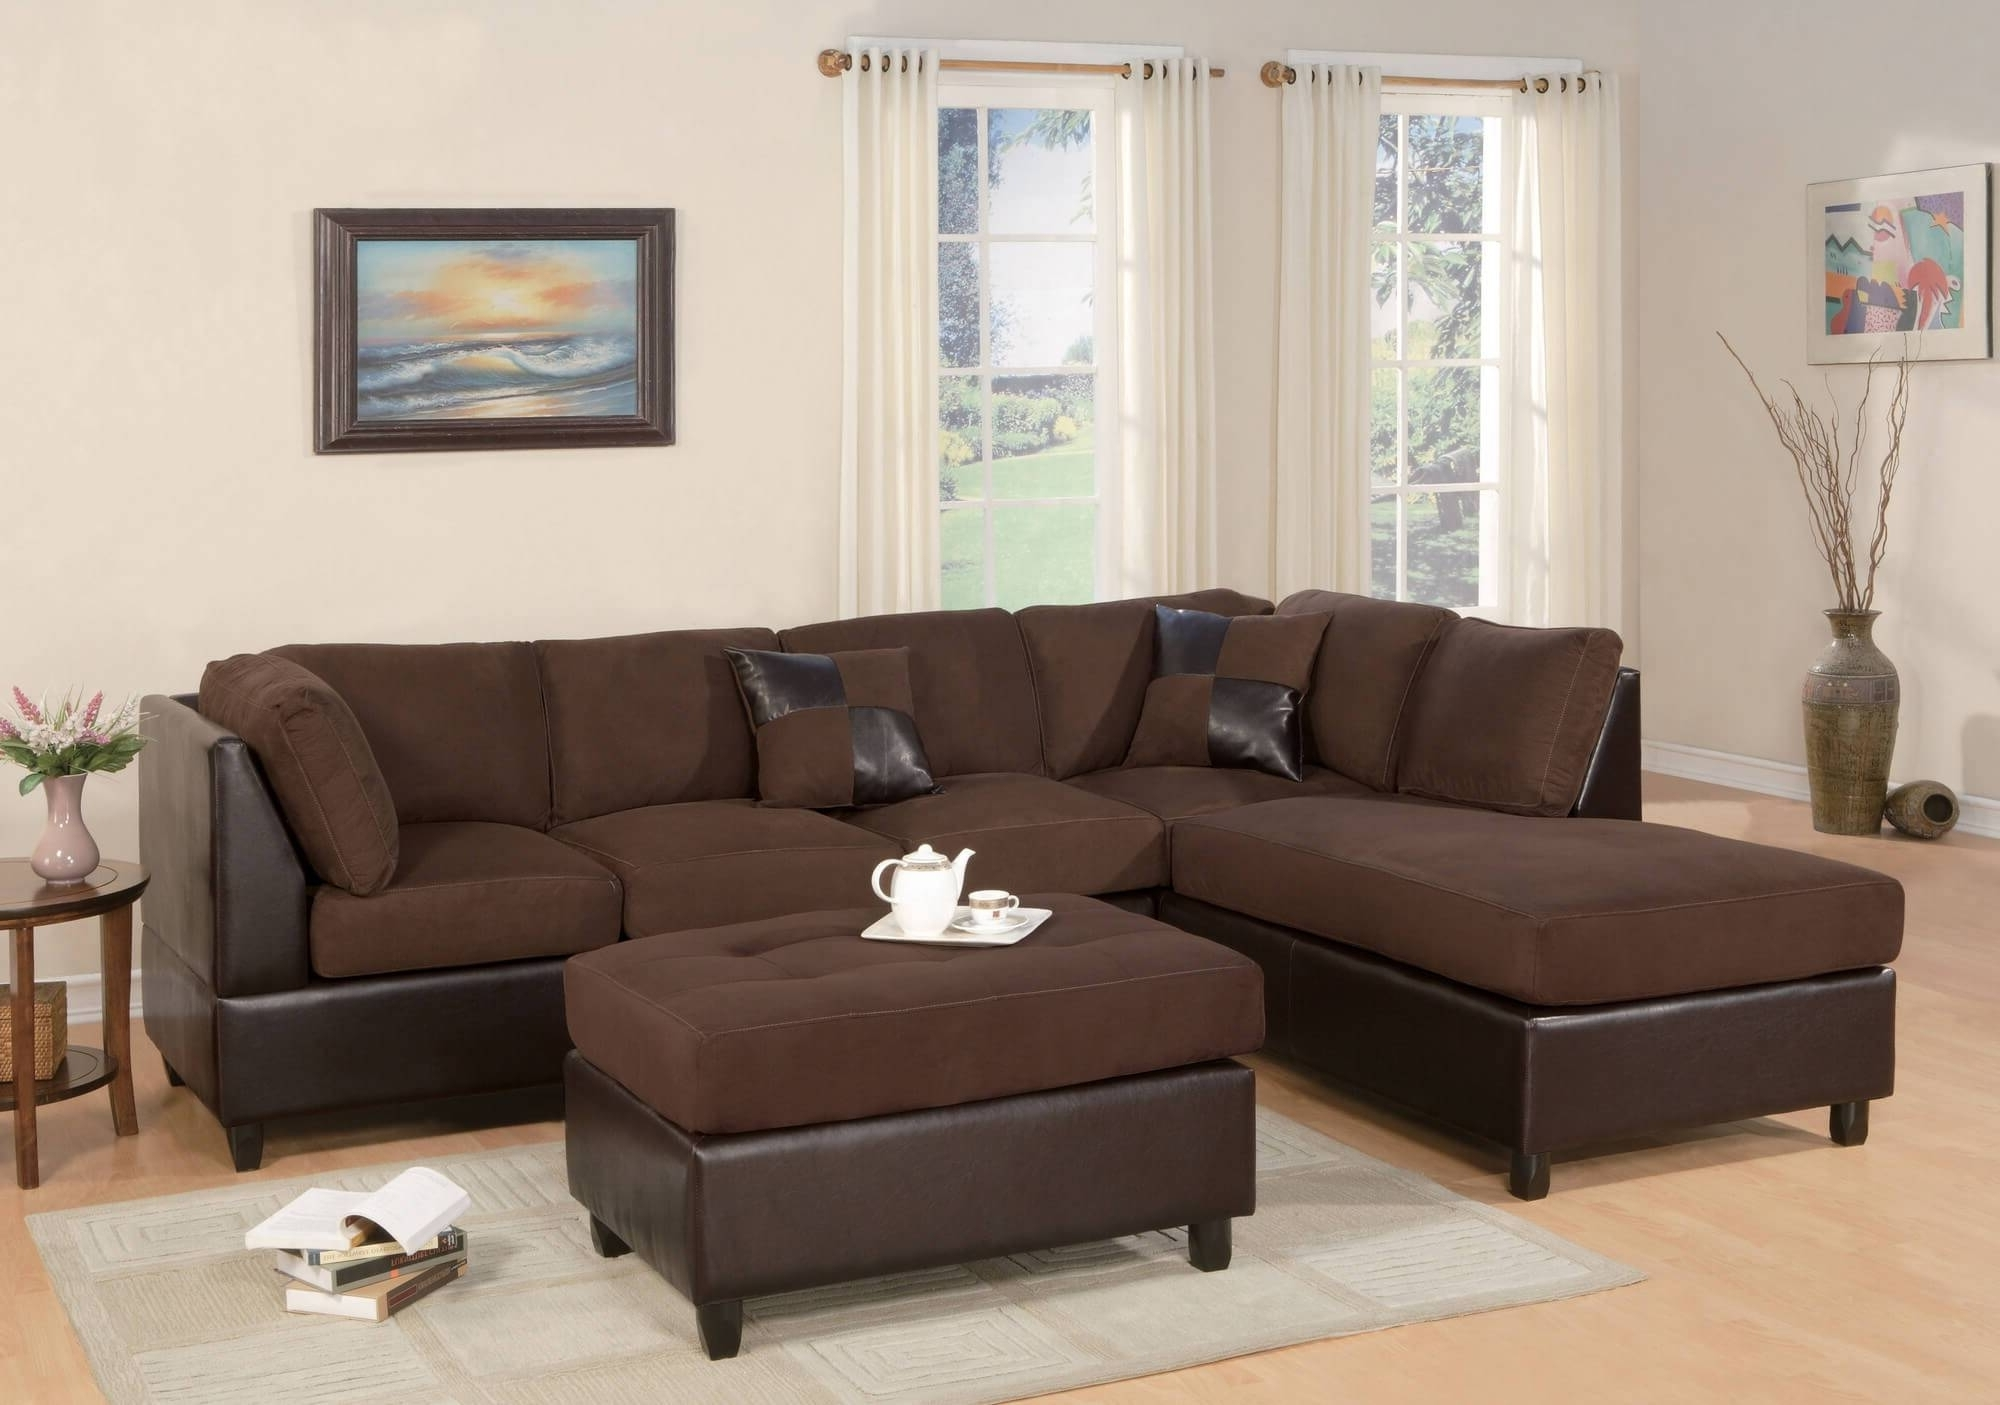 Furniture : Best Sofas Under 1000 Best Sofas Under 1000' Best Inside Well Known Sectional Sofas Under (View 4 of 20)